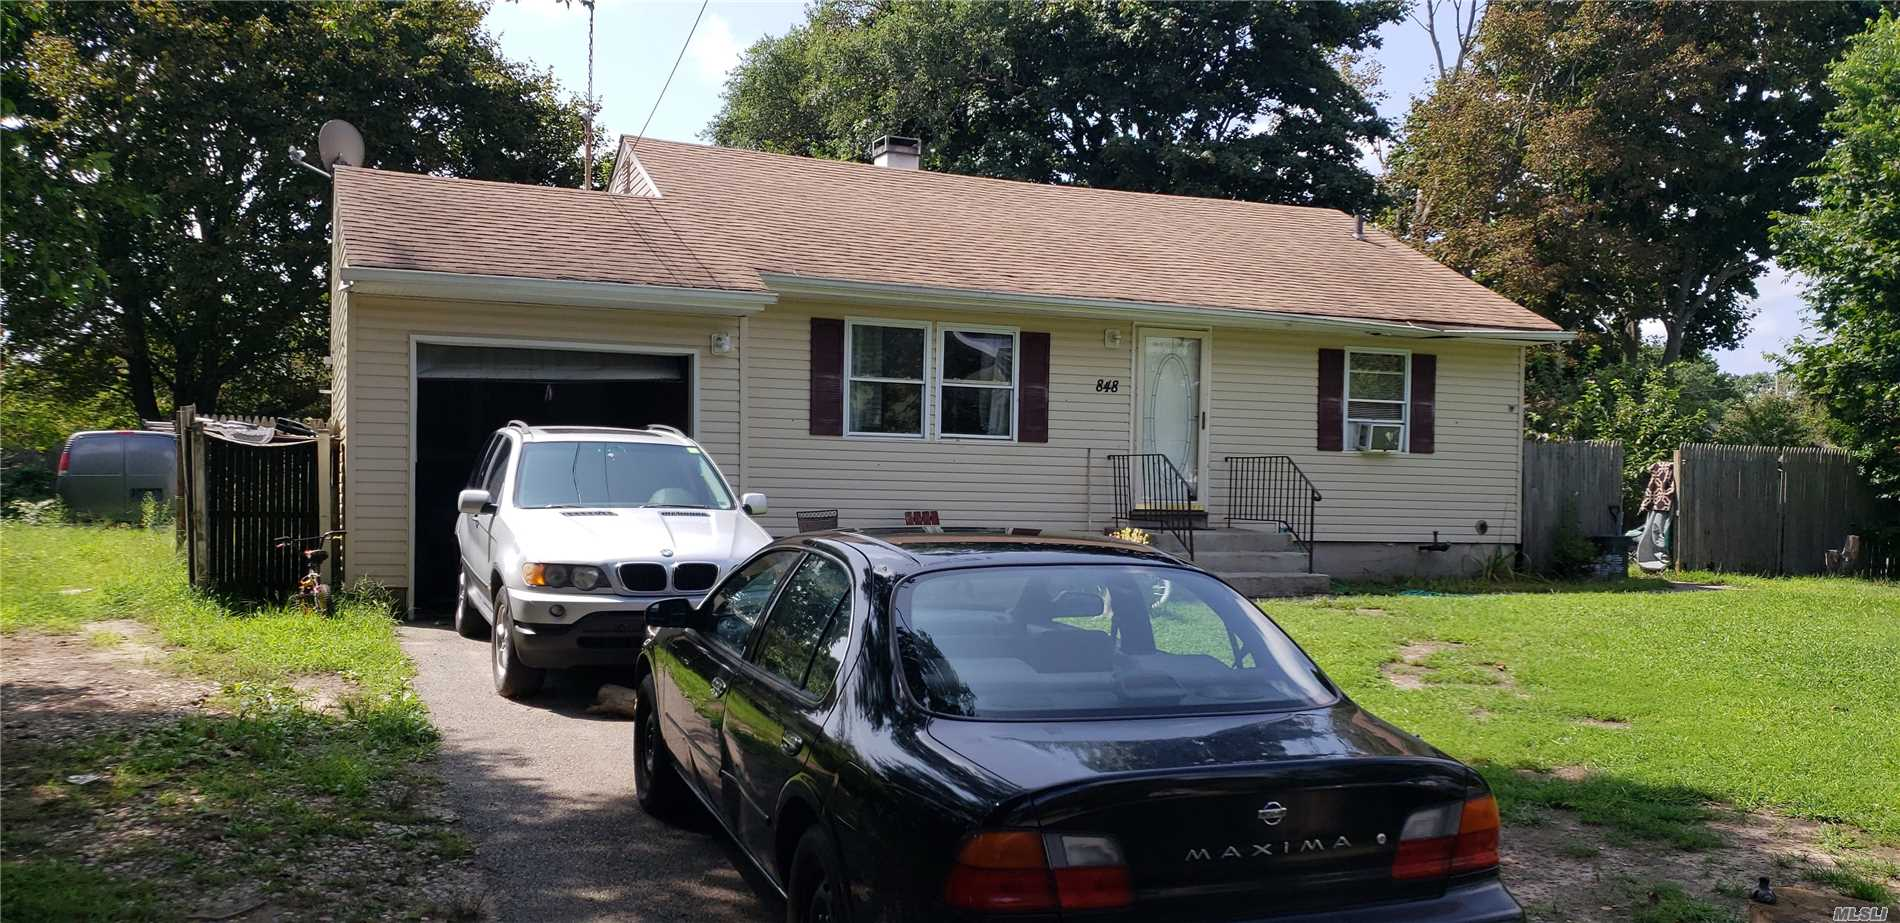 Photo of home for sale at 848 Bayview Ave, Bellport NY